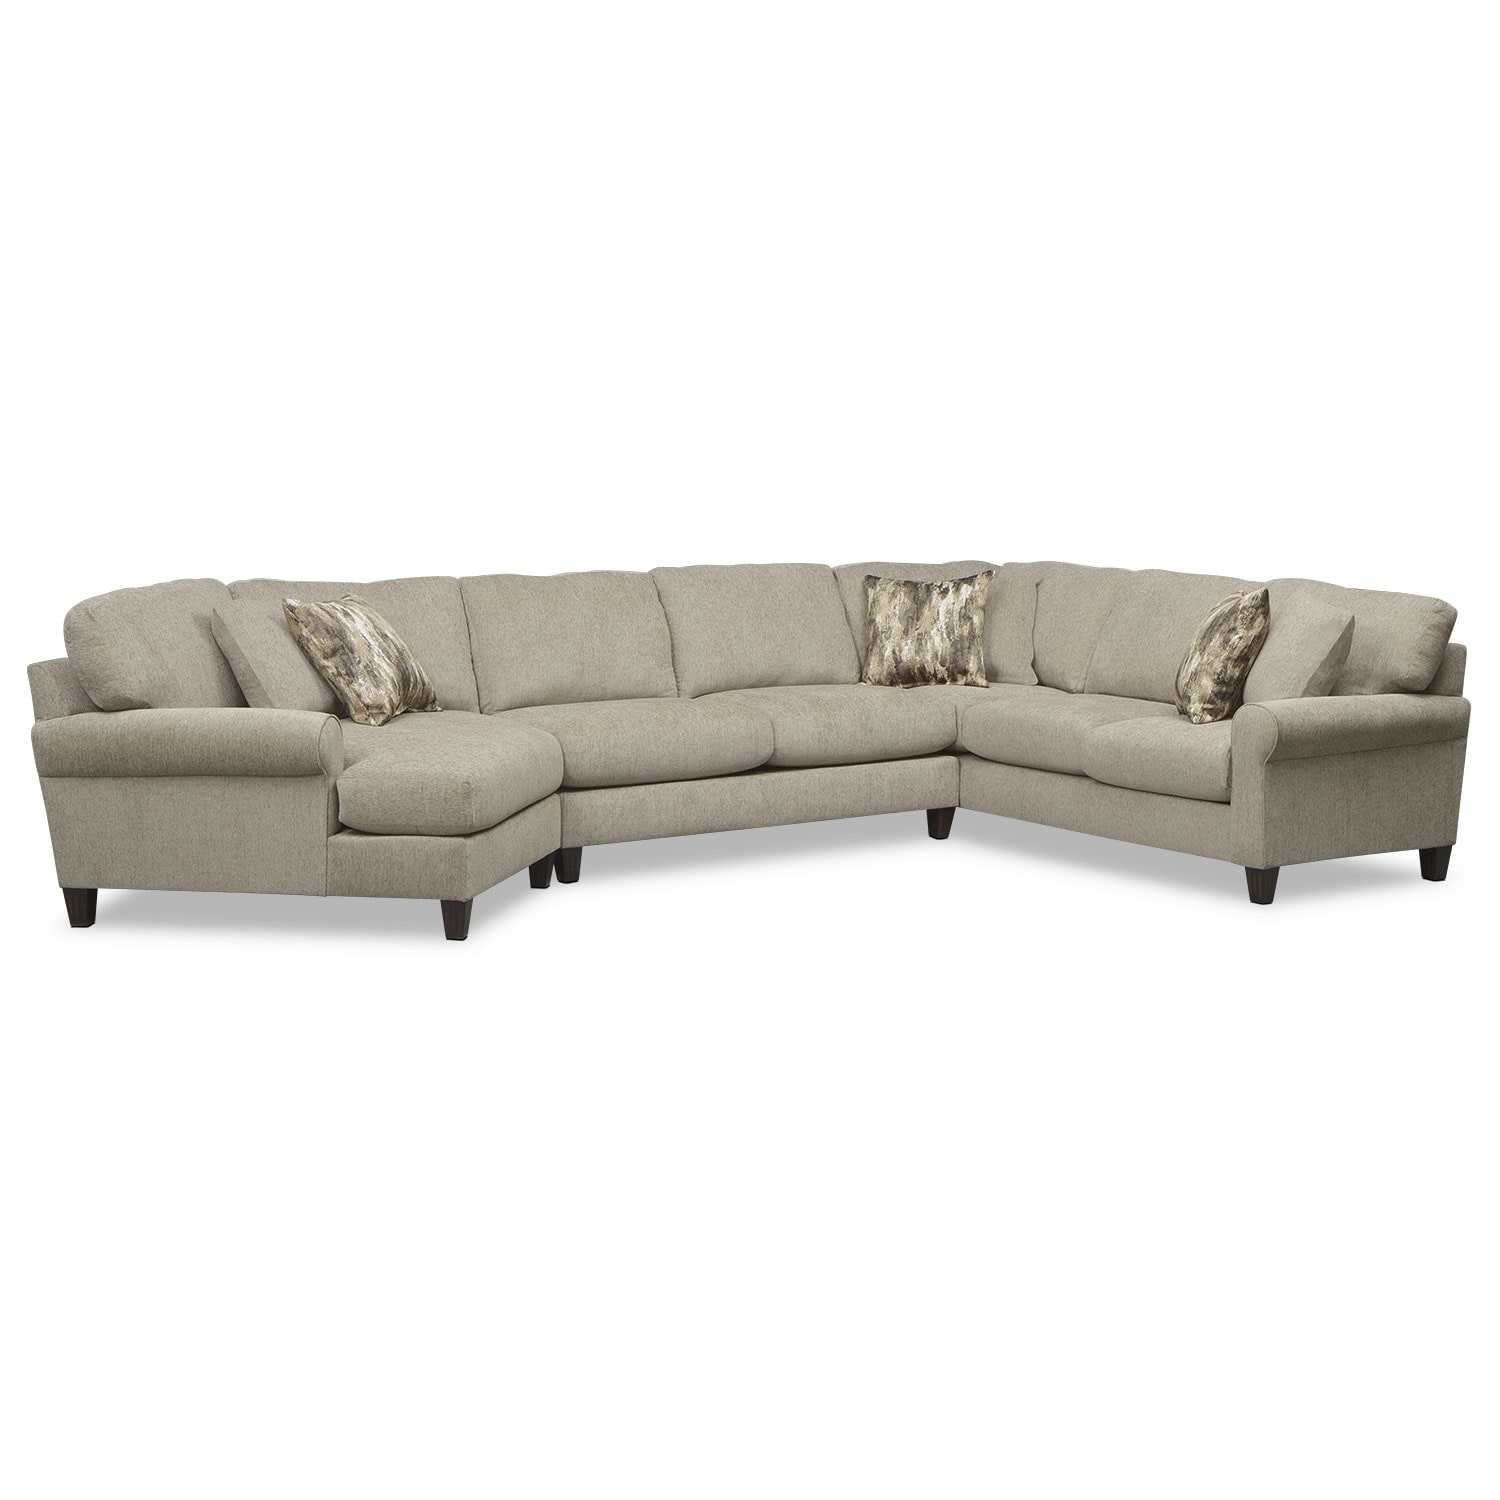 Karma 3-Piece Sectional with Left-Facing Cuddler - Mink